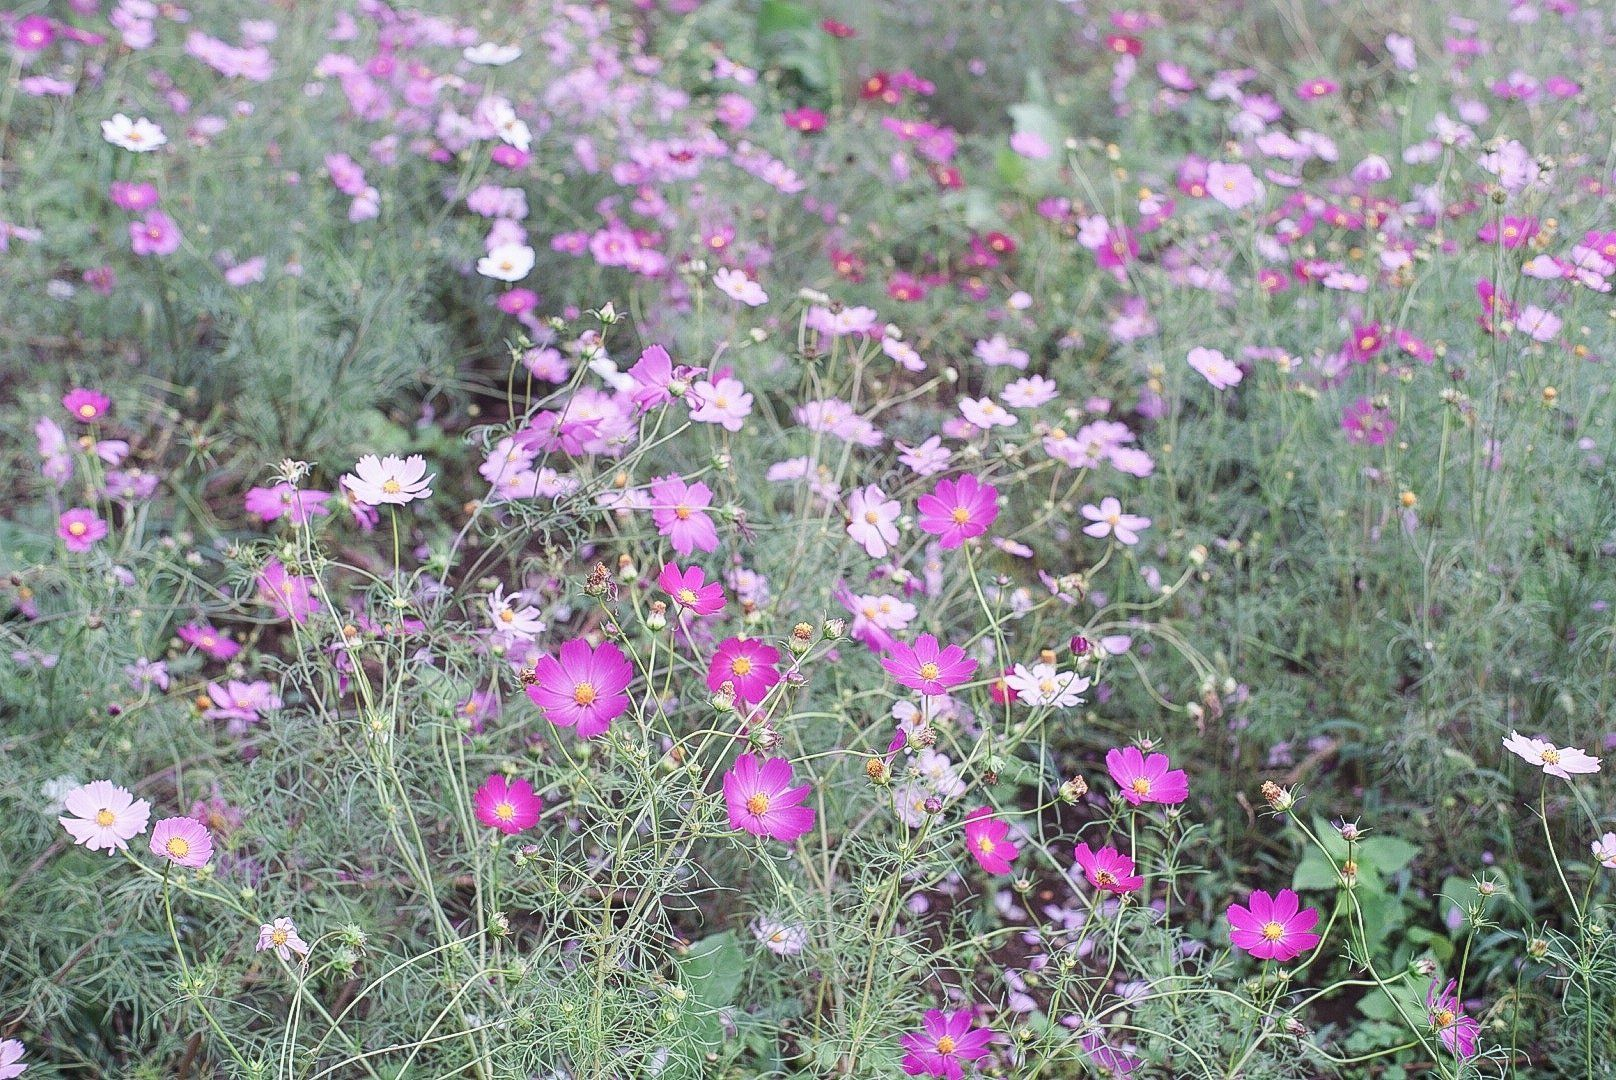 Japan S Seasons In Photos October Harvest And Cosmos Flowers Matcha Japan Travel Web Magazine October Is The Cosmos Flowers Matcha Japan Flower Festival